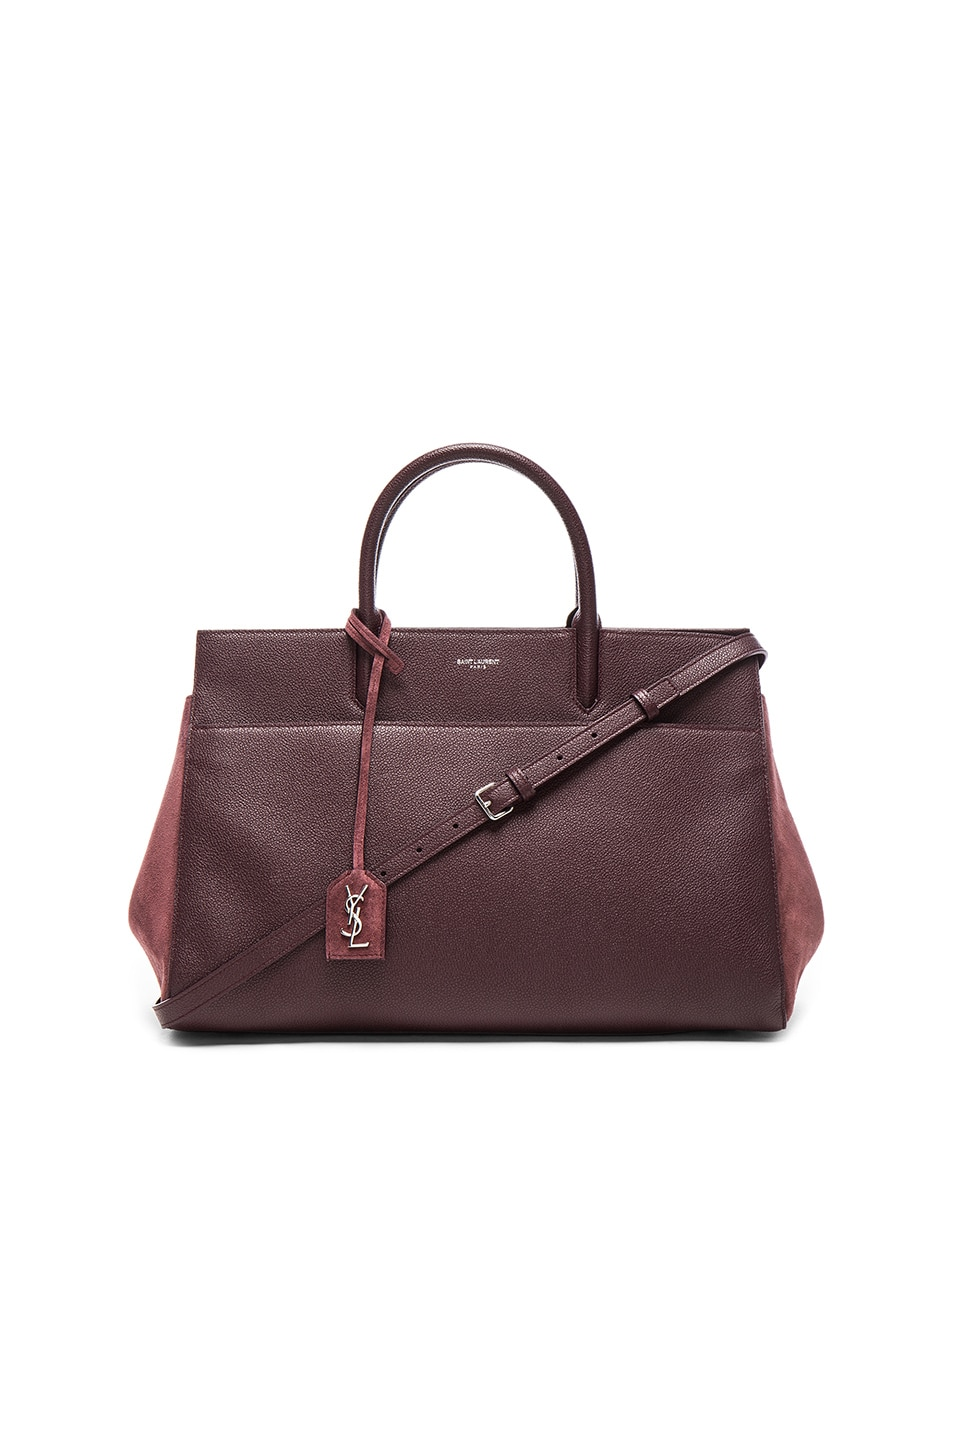 Image 1 of Saint Laurent Rive Gauche Medium Cabas in Bordeaux